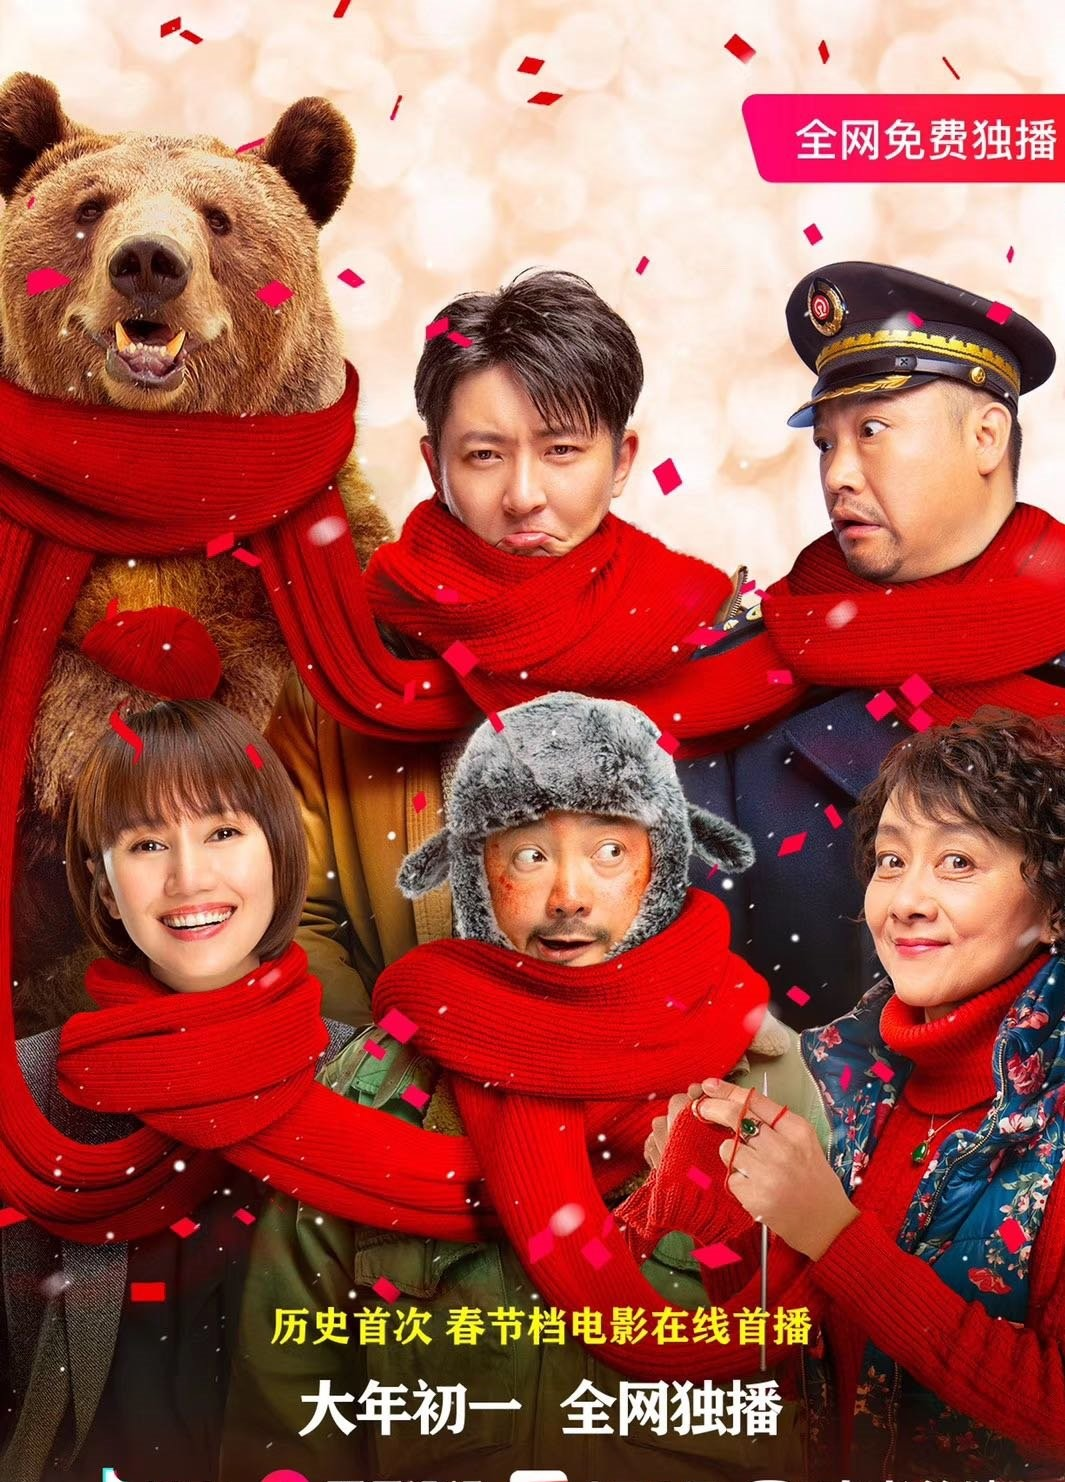 Lost in Russia, a Chinese comedy movie originally set to premiere today, is among the movies whose release is  cancelled due to the ongoing coronavirus scare. Photo Courtesy: Twitter